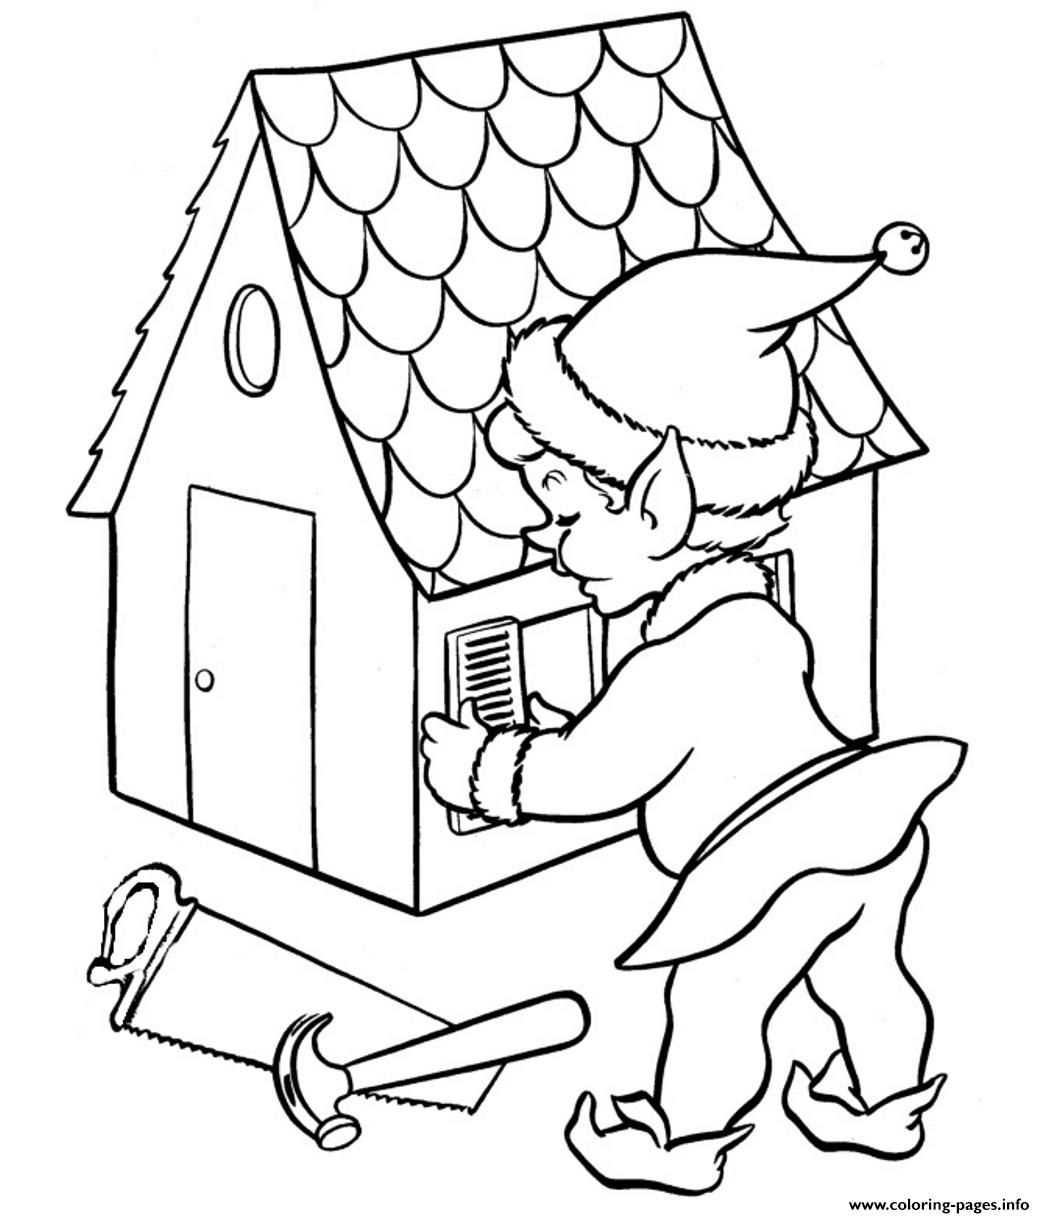 Print elf free coloring christmas pagesaf coloring pages